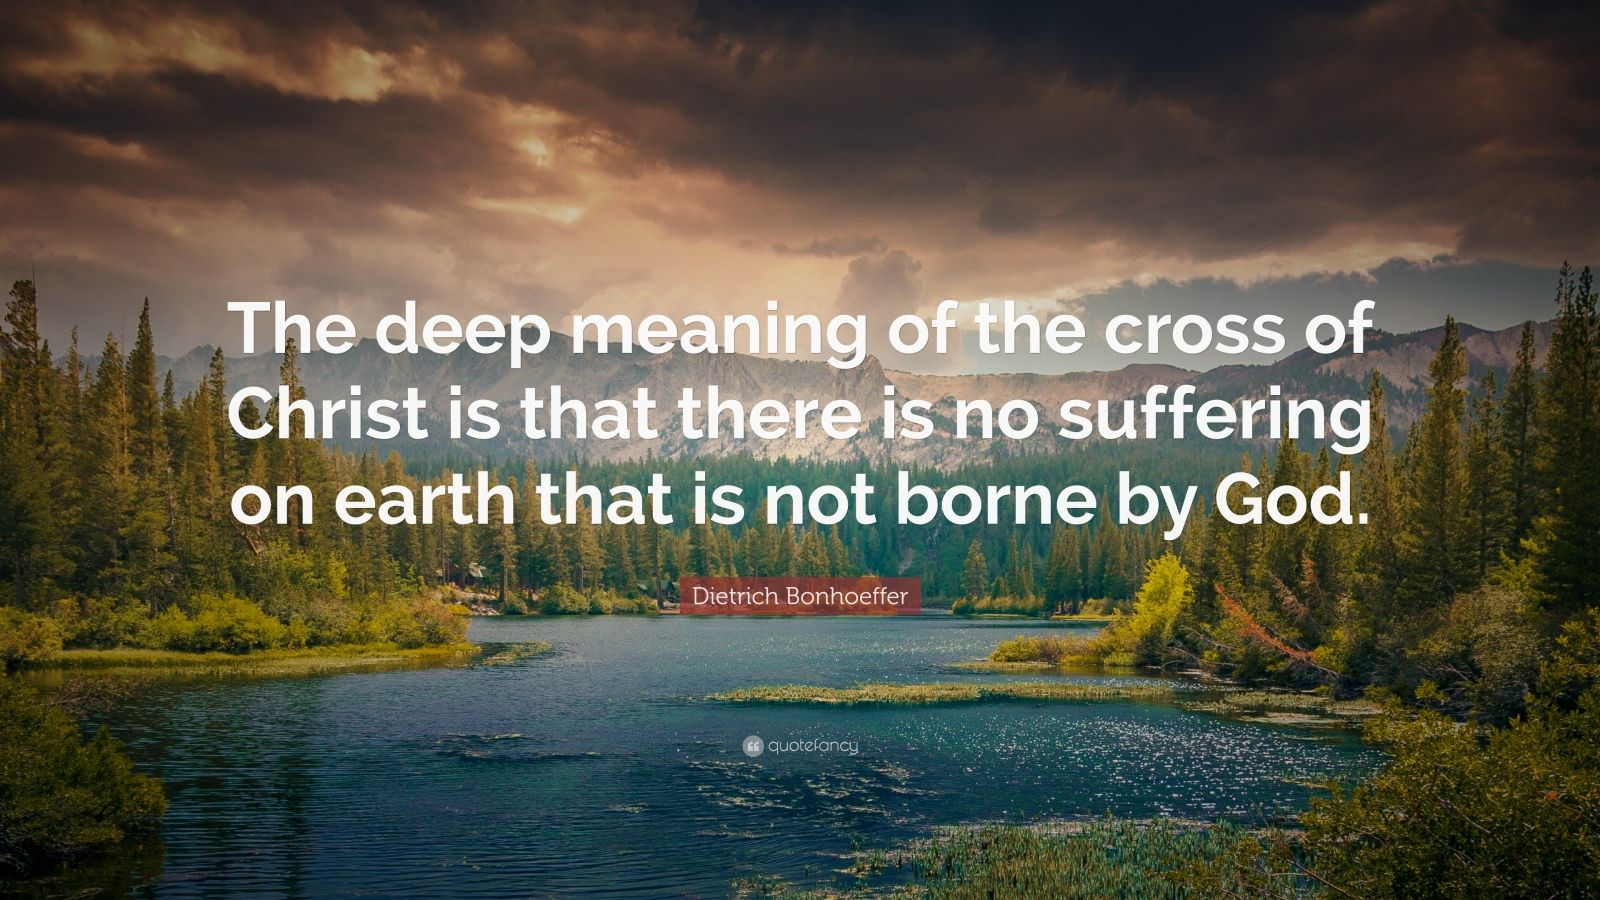 Steve Jobs Motivational Quotes Wallpaper Dietrich Bonhoeffer Quote The Deep Meaning Of The Cross